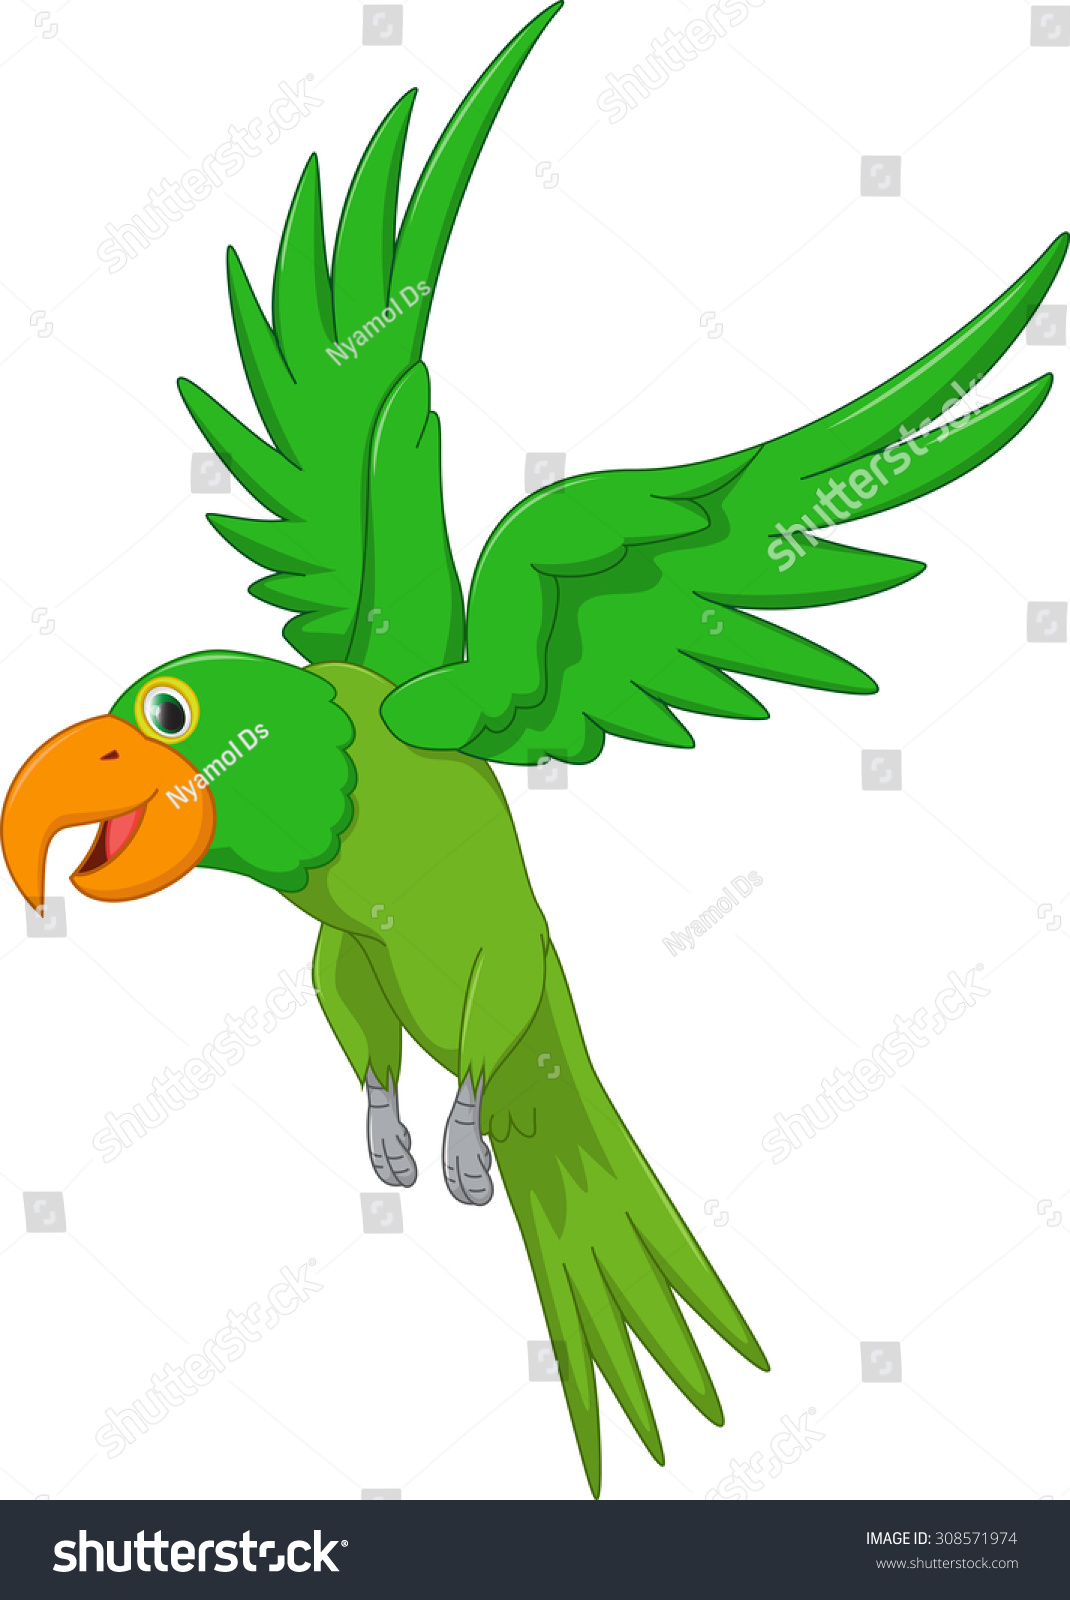 Cartoon parrot flying - photo#13